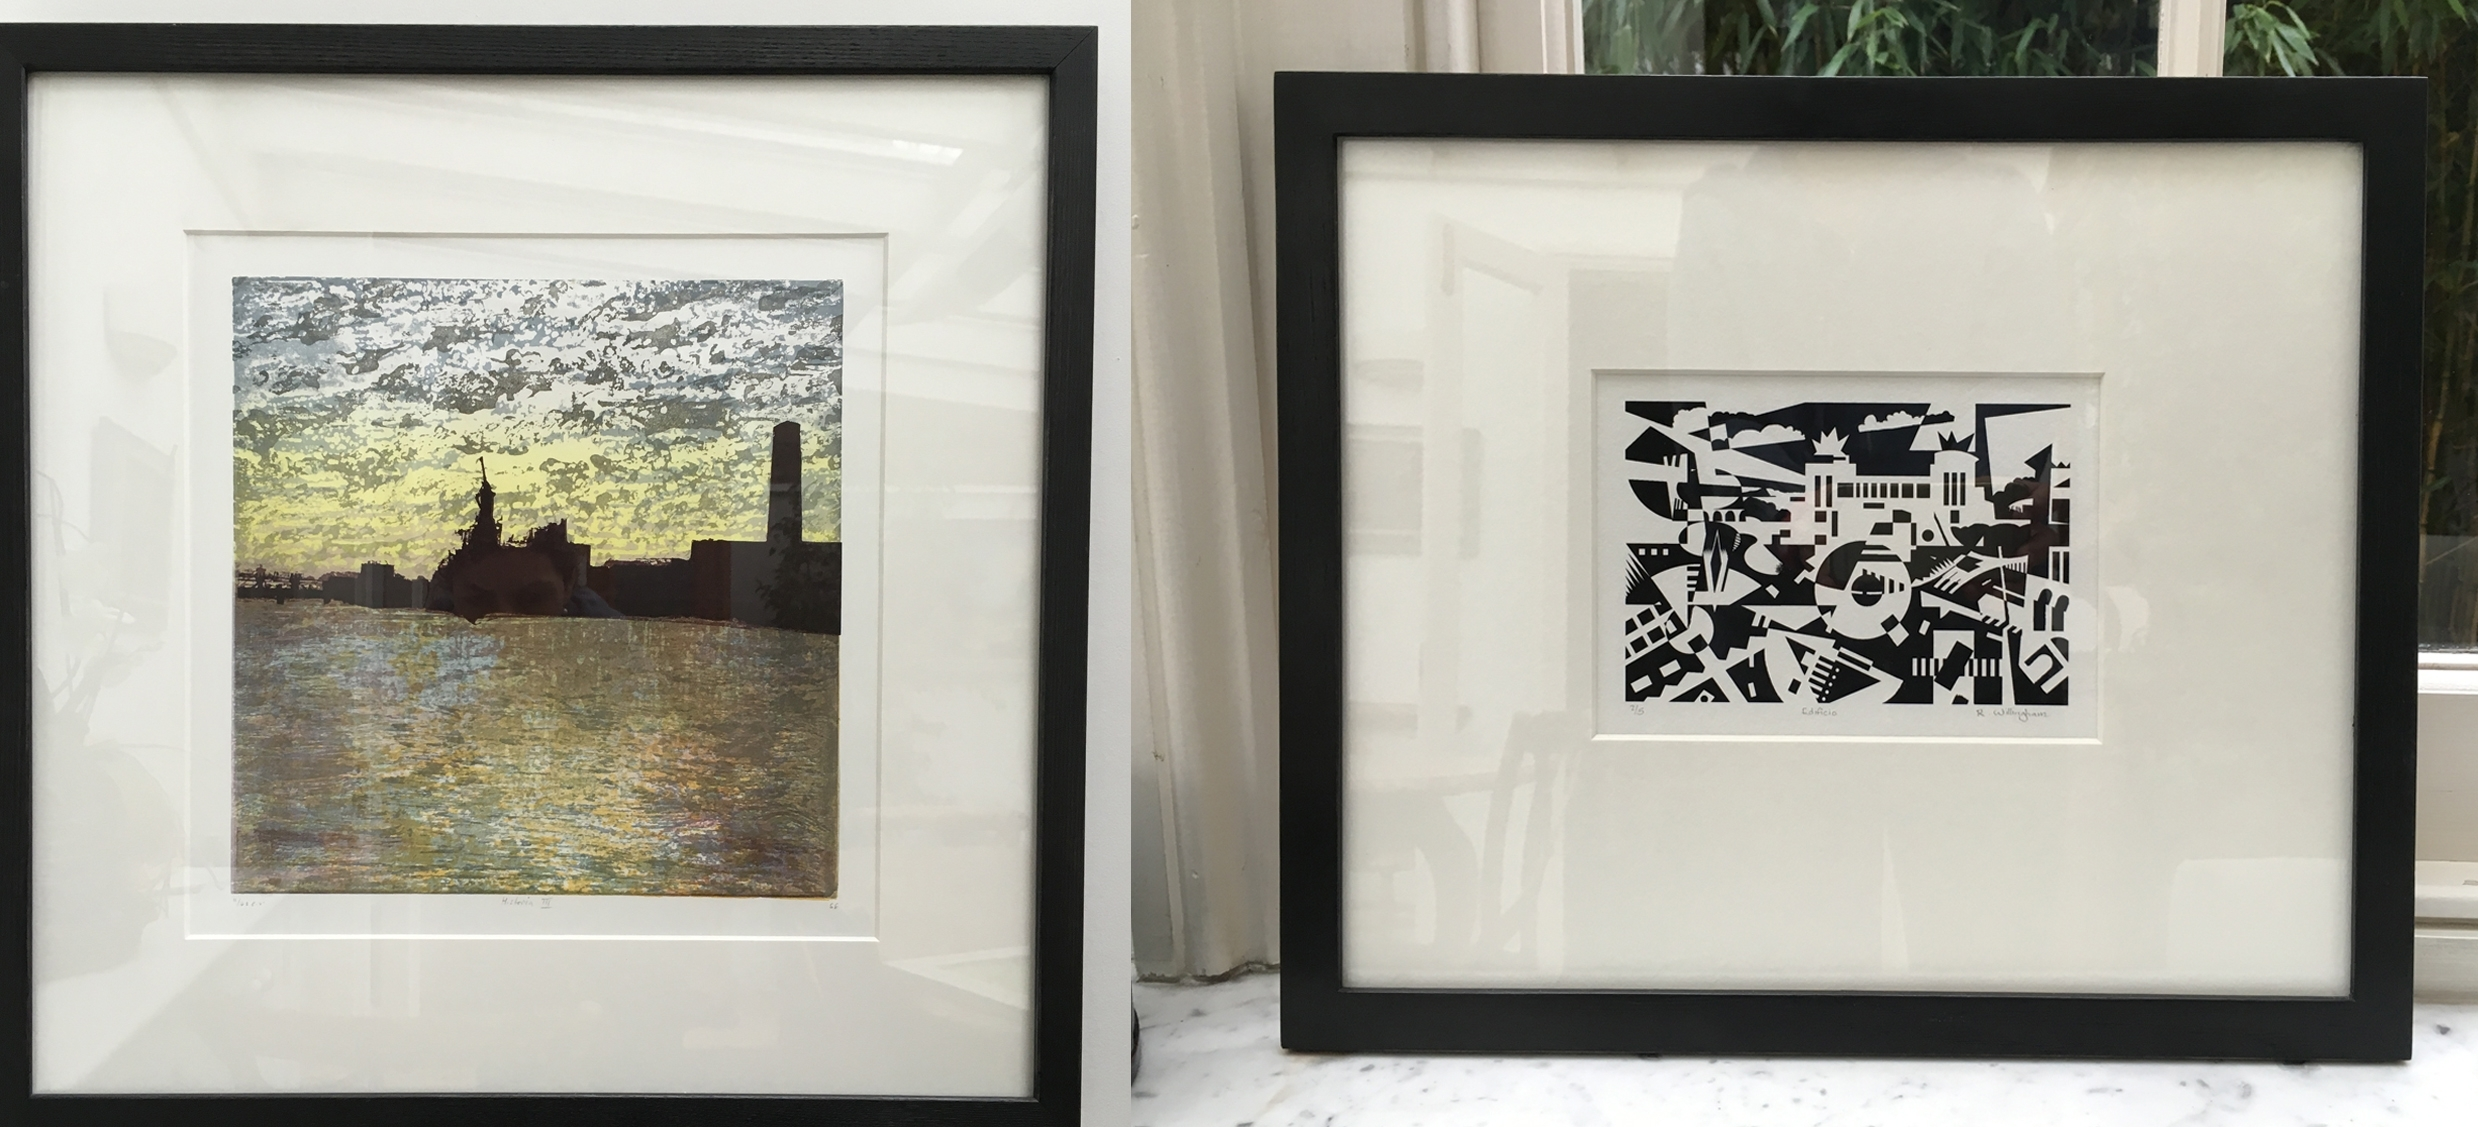 How To Frame Prints – Print Solo Intended For Current Black And White Framed Art Prints (View 8 of 15)